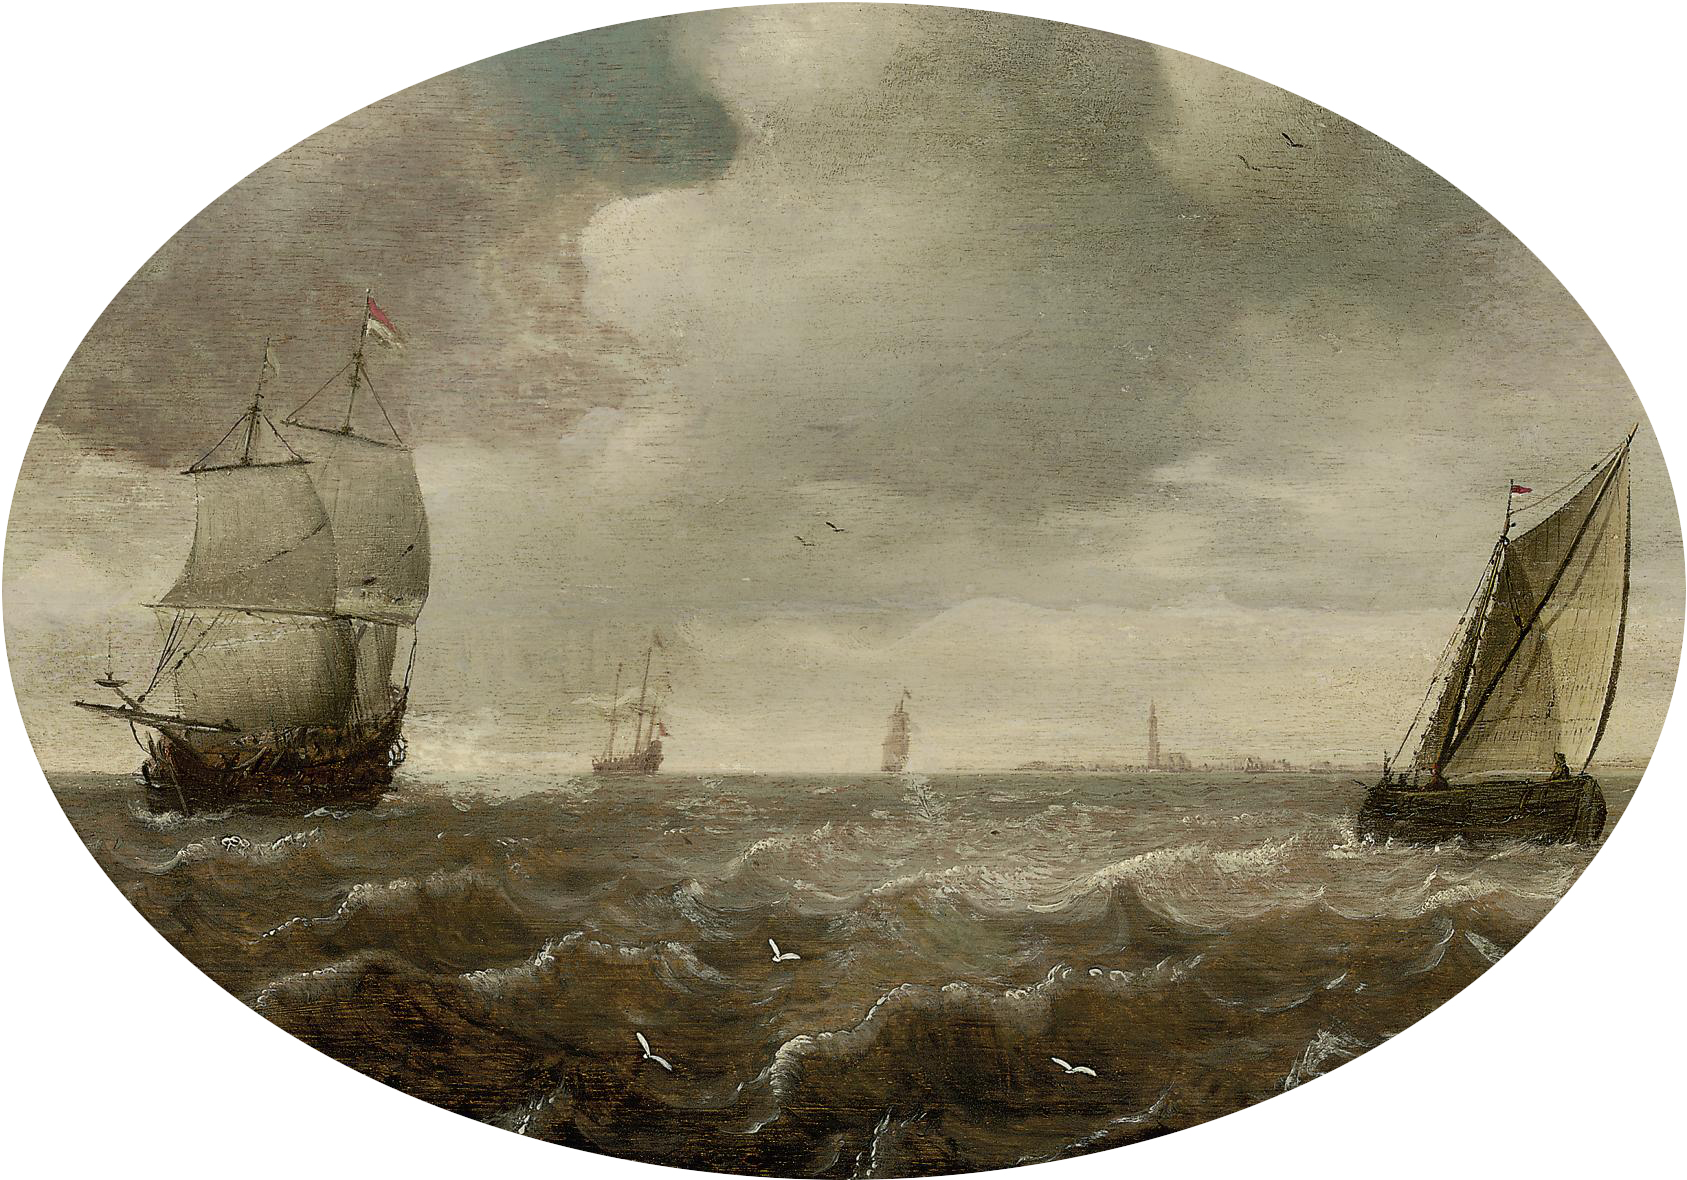 Shipping in choppy water, a town in the distance